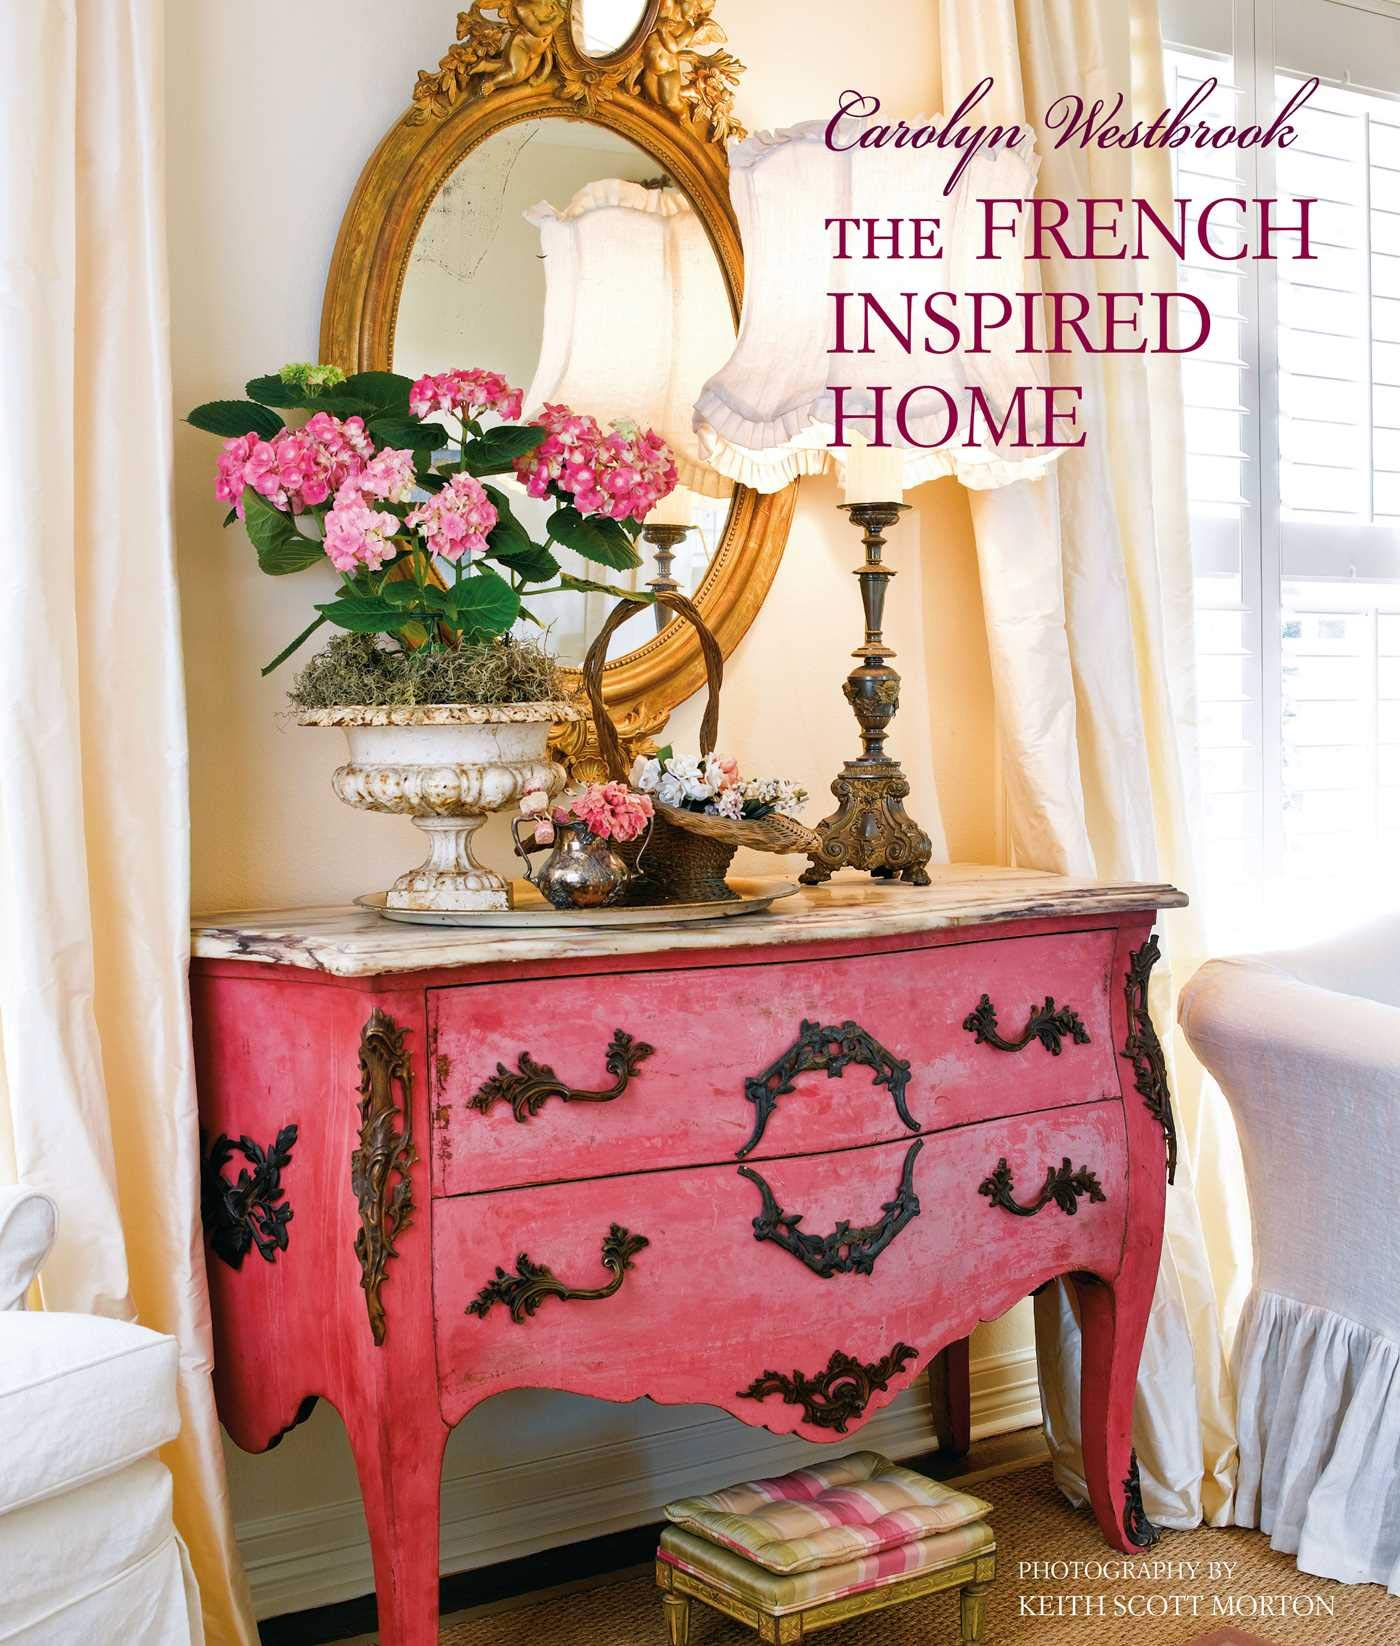 Westbrook, C: Carolyn Westbrook The French-Inspired Home